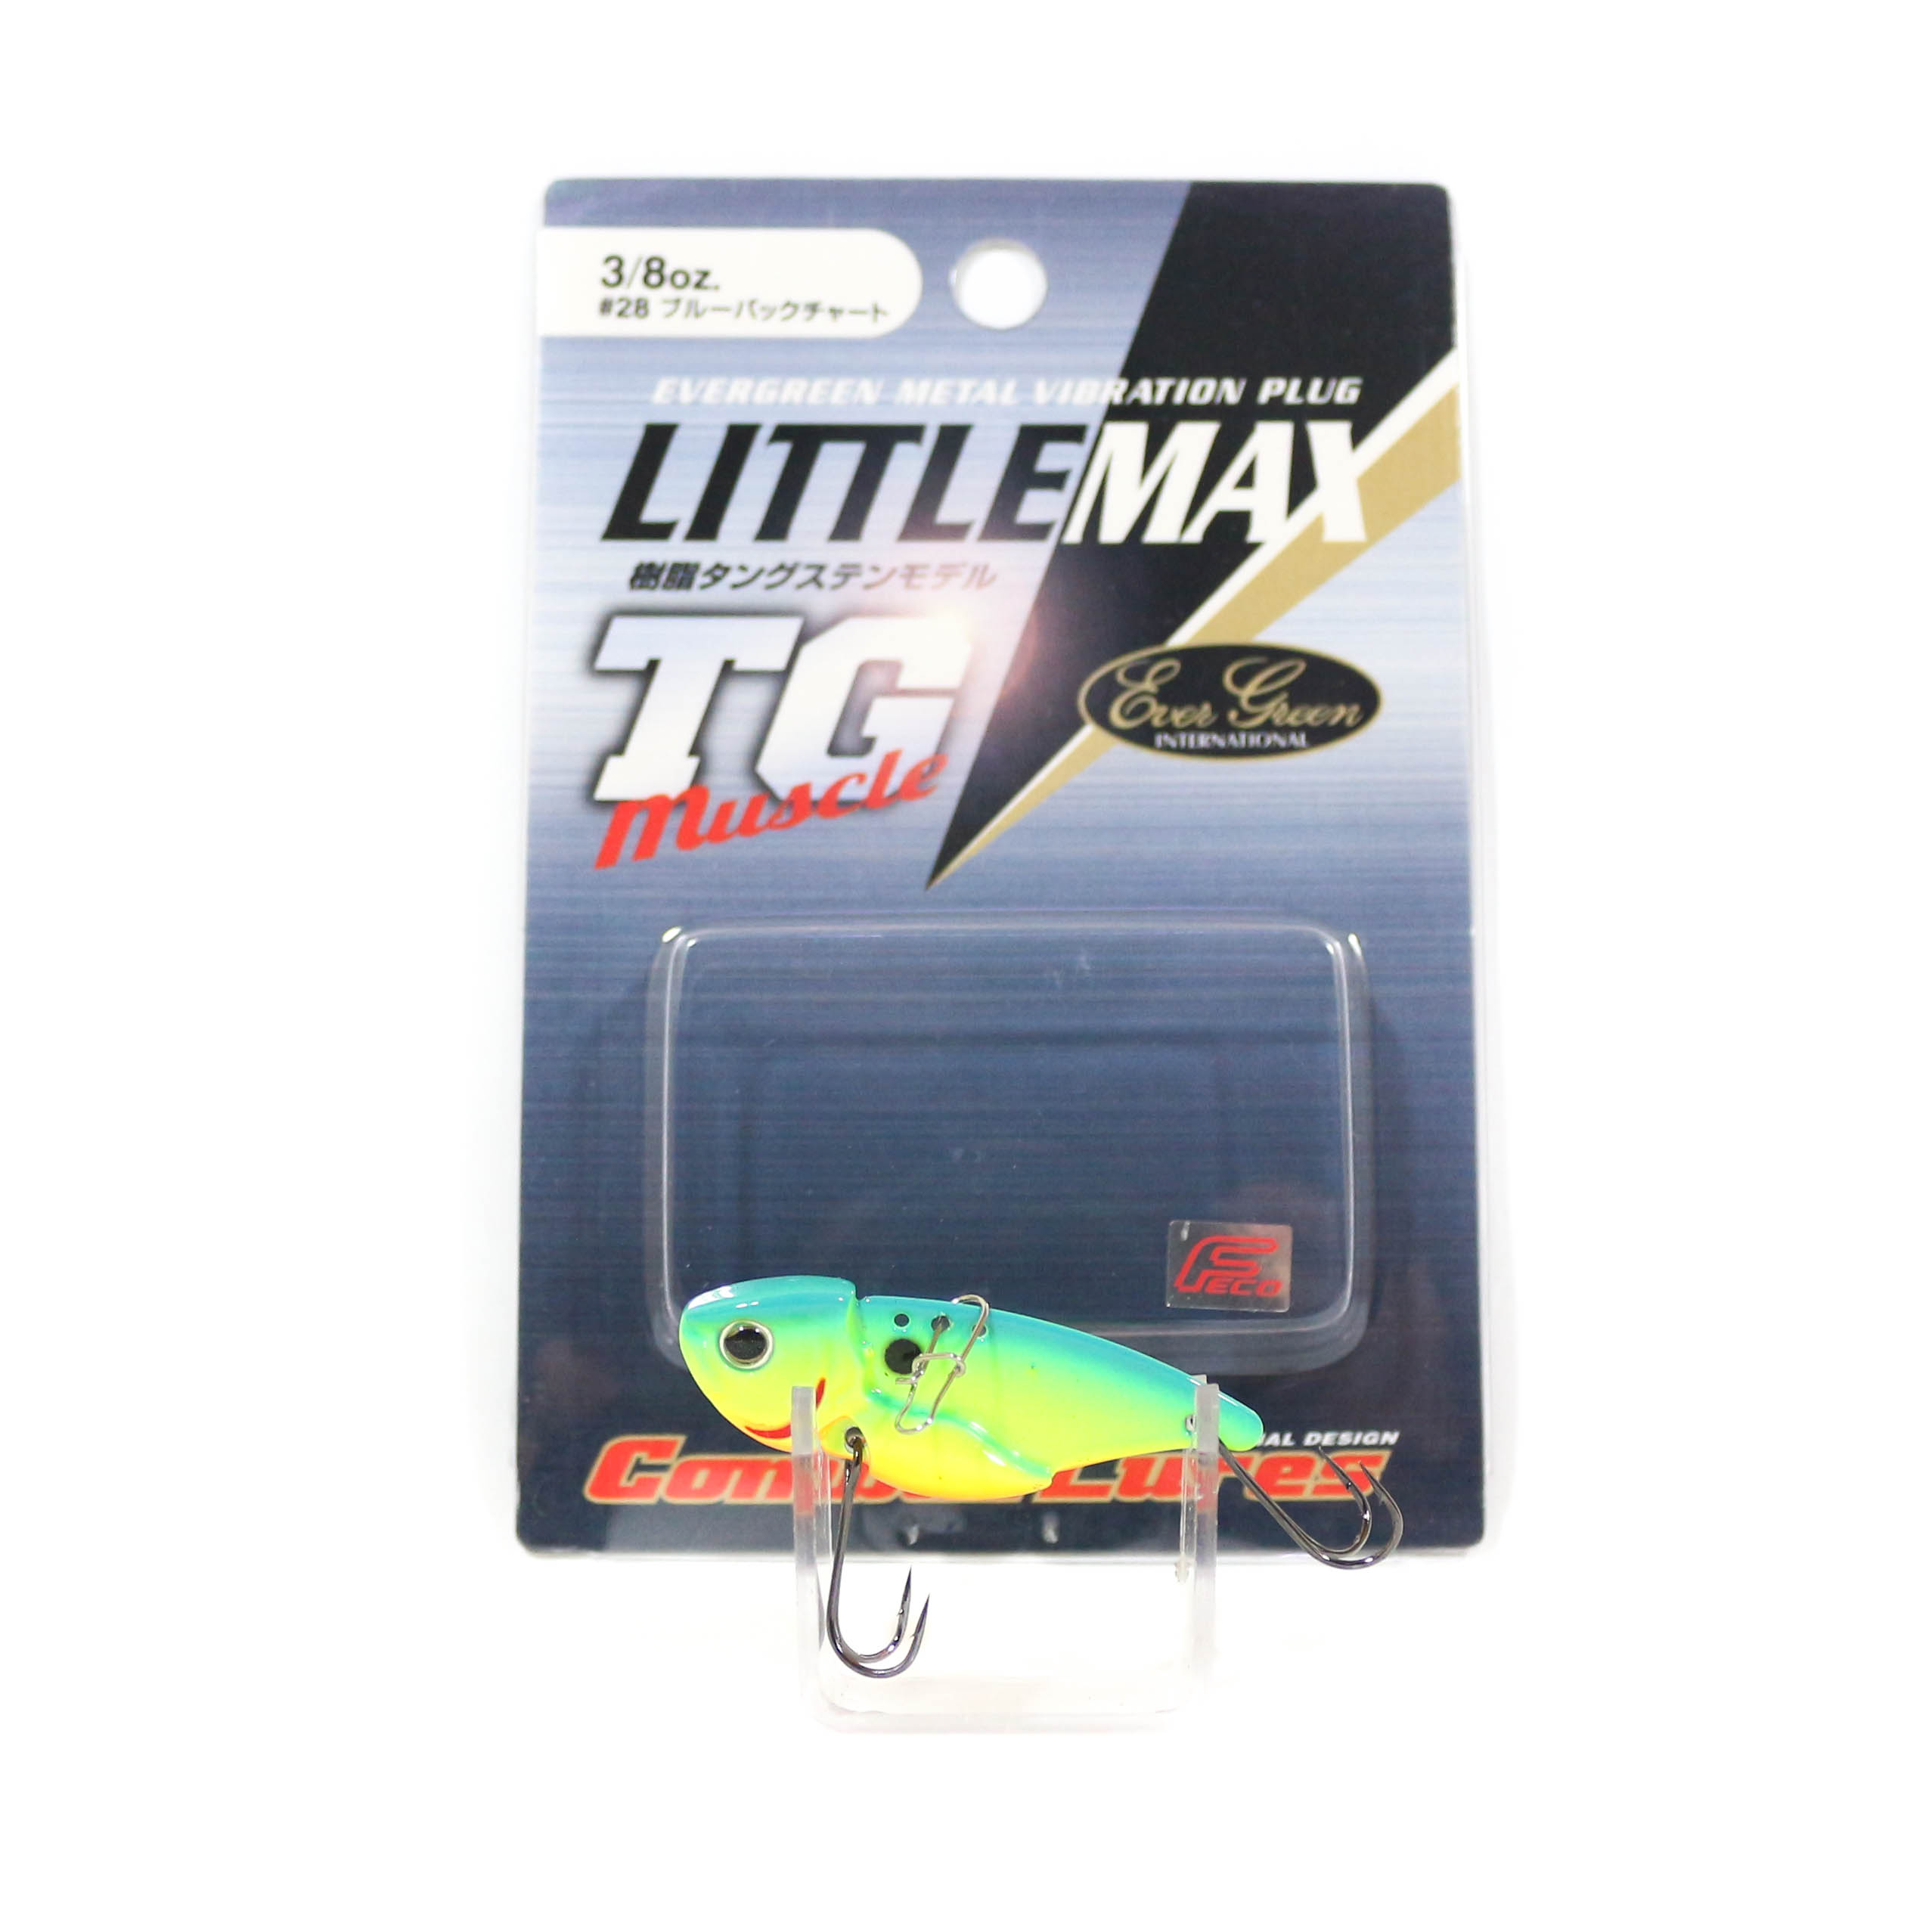 Sale Evergreen Little Max TG Muscle Metal Vibration 3/8 oz Lure 28 (0621)